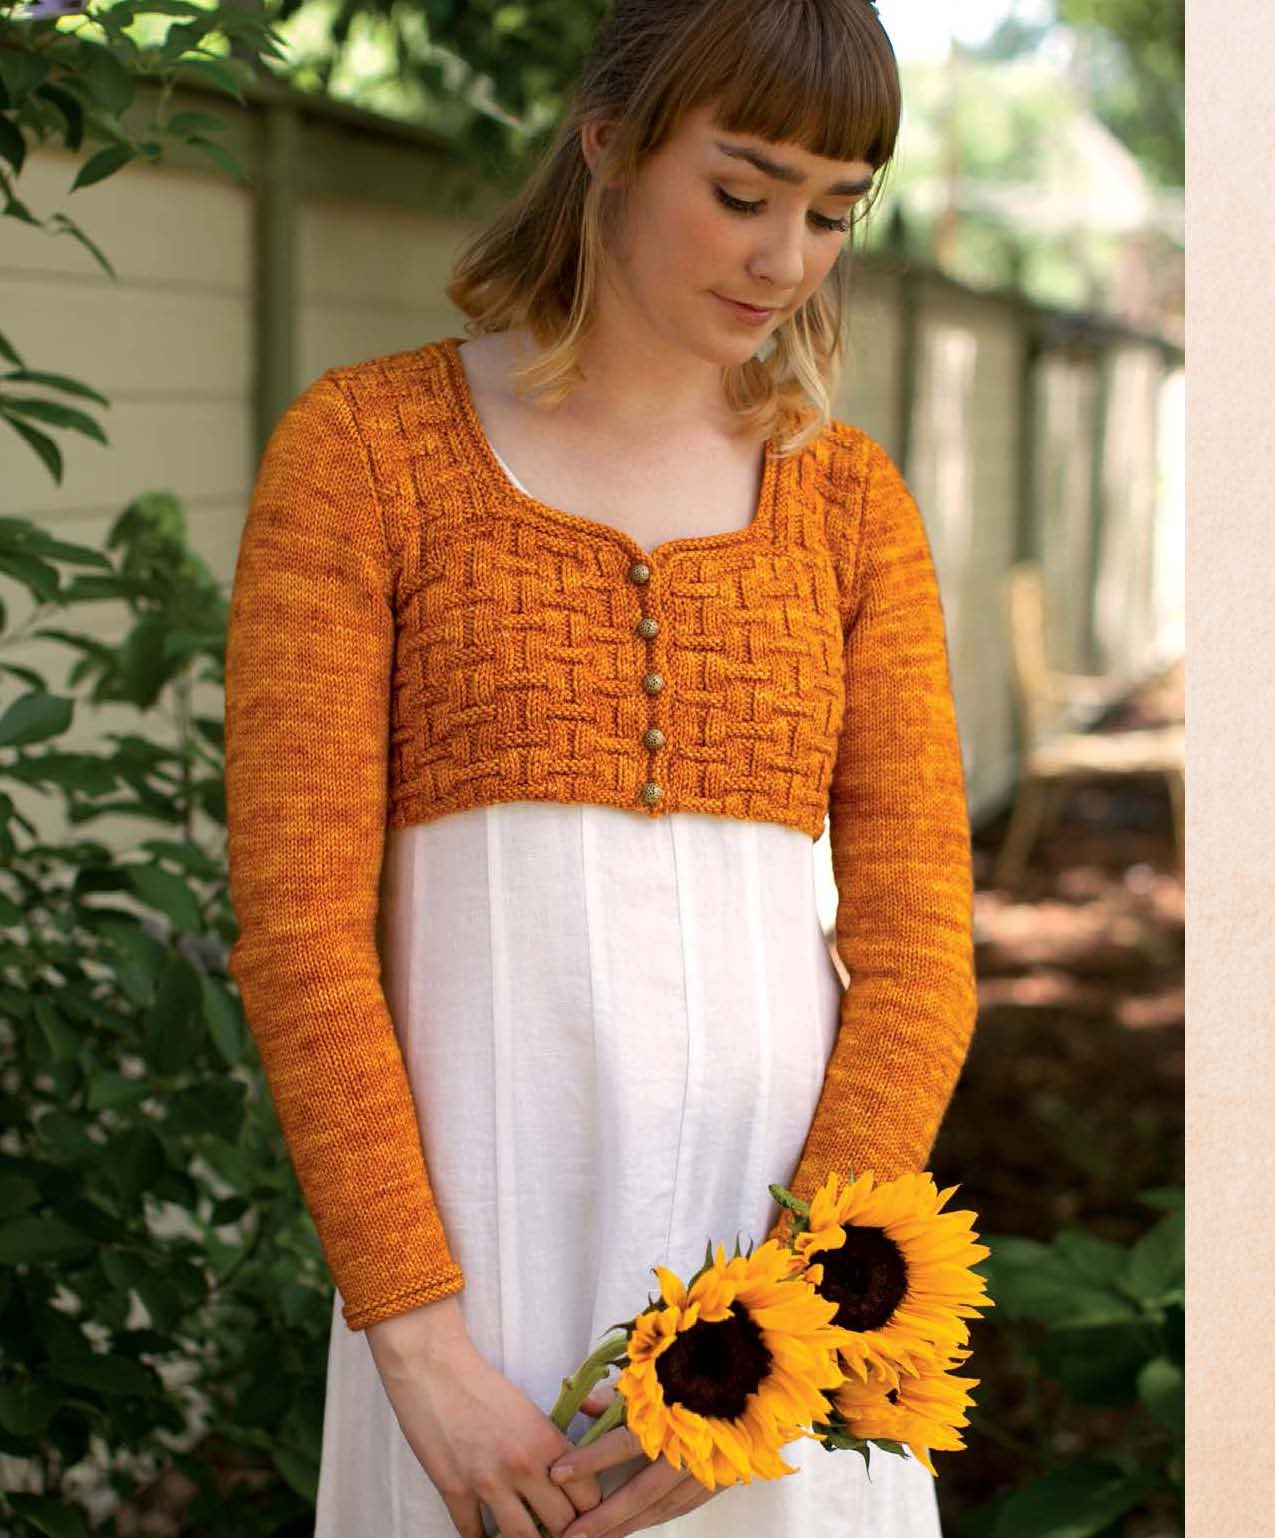 Jane Austen Knitting Patterns : The Best of Jane Austen Knits & Giveaway! TanisKnits